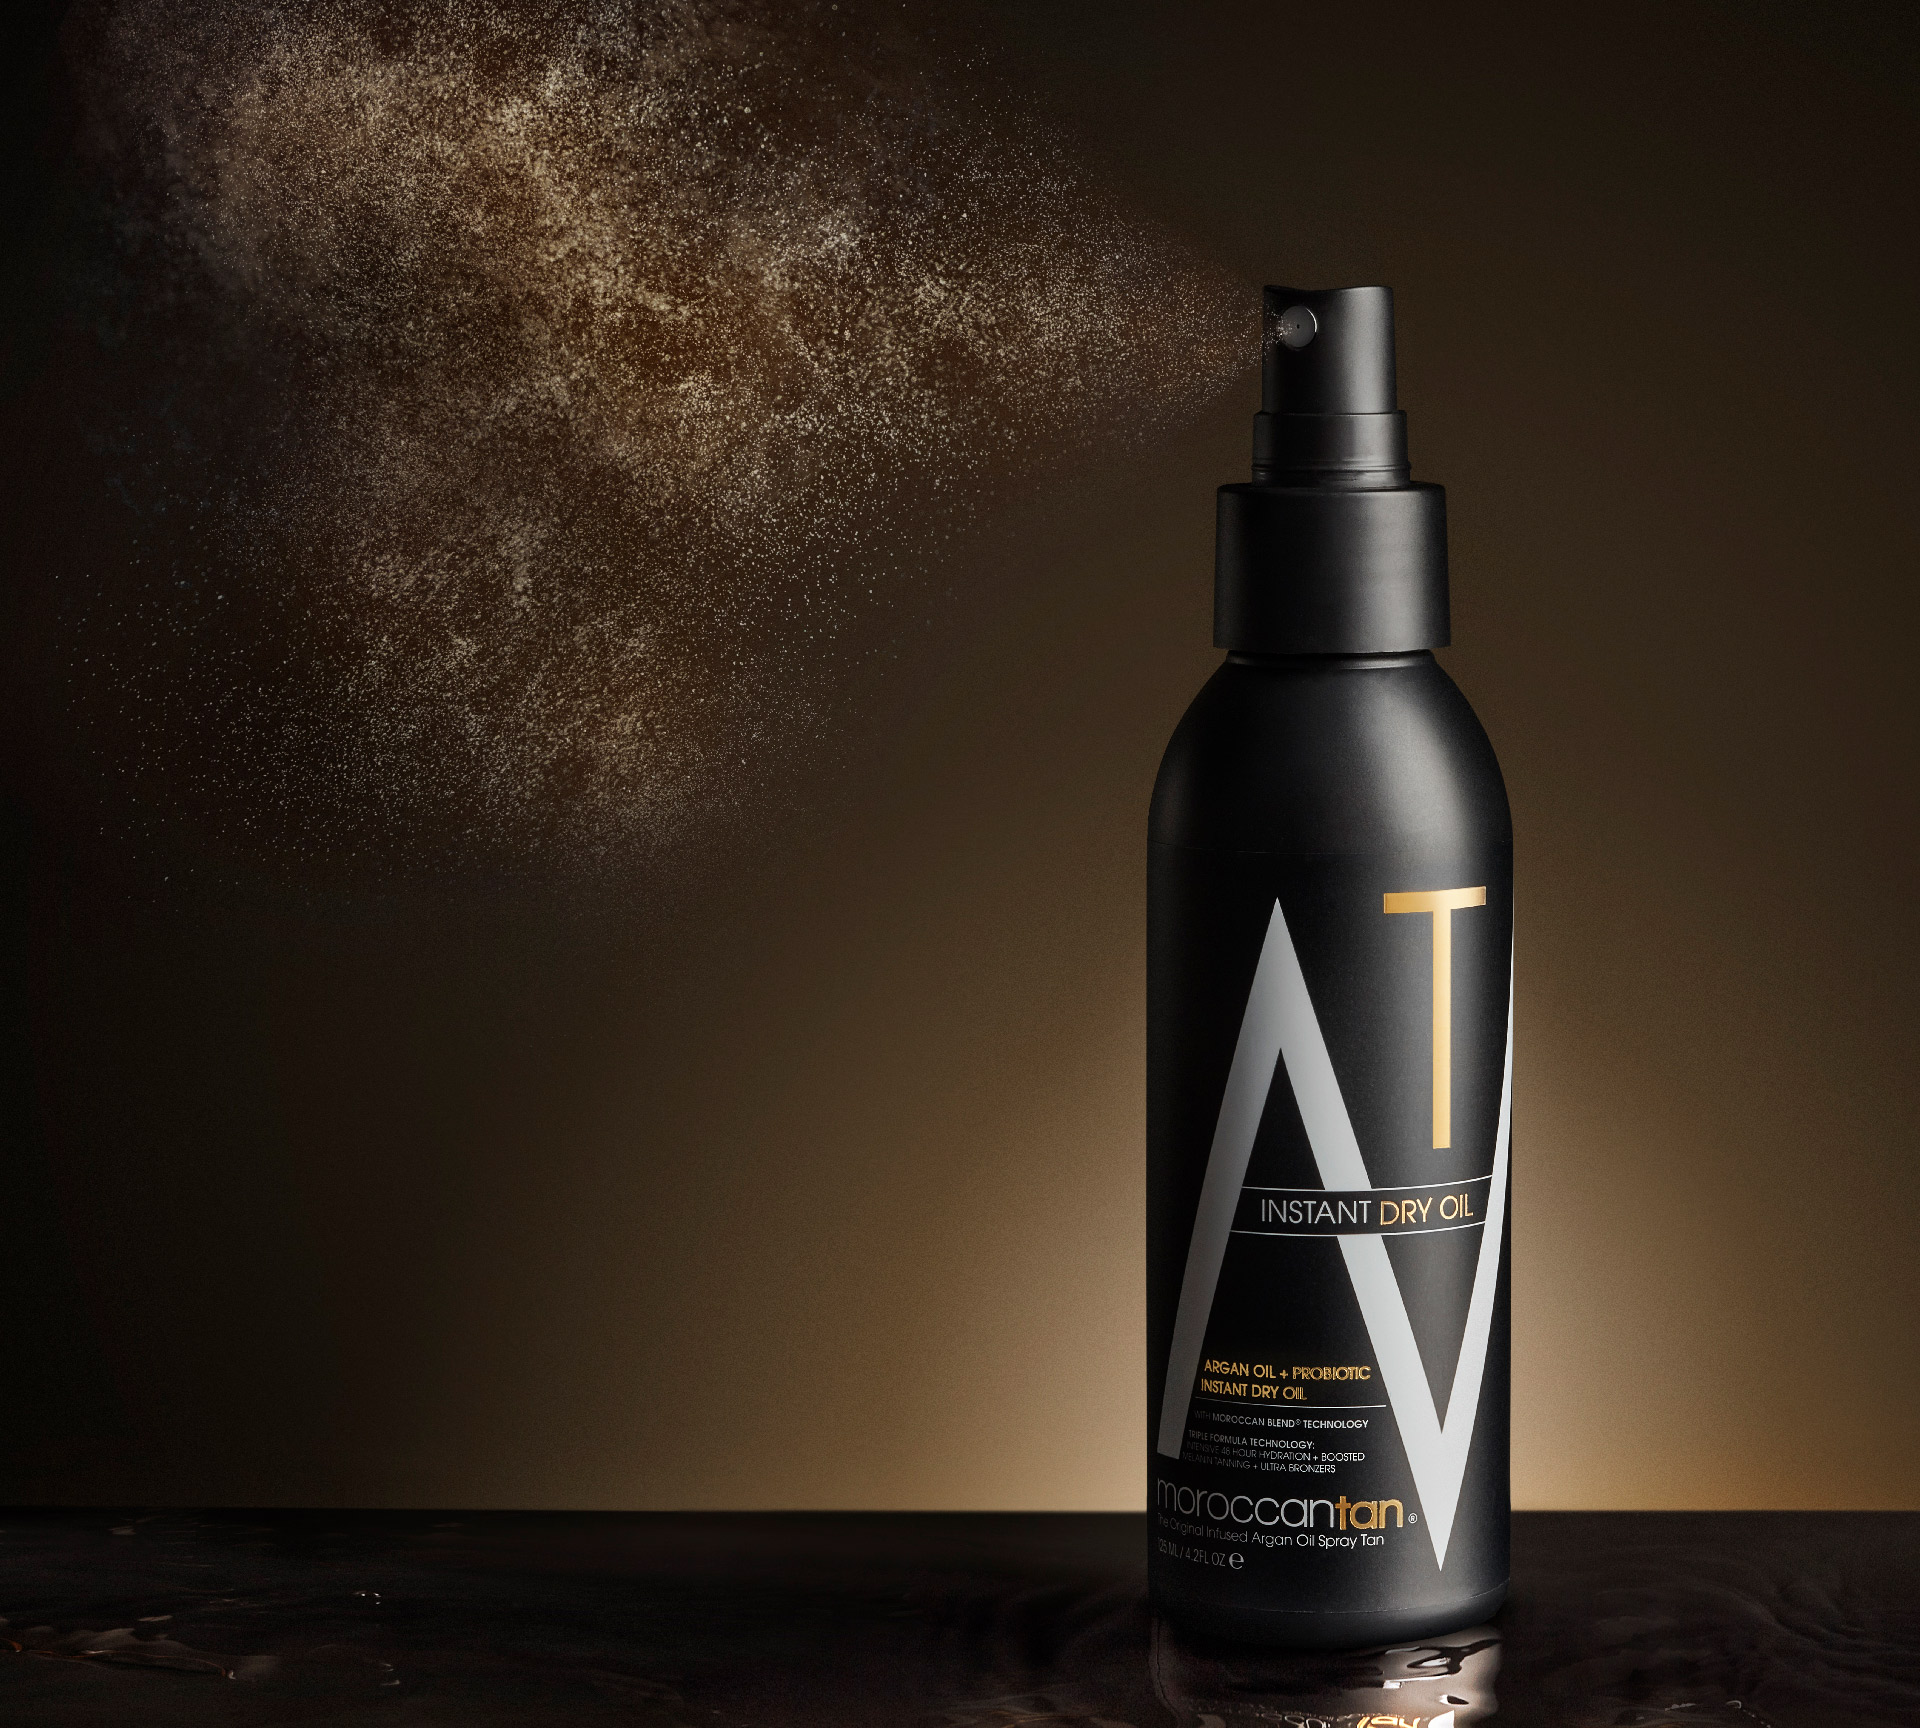 MoroccanTan launches new Instant Dry Oil – The Exceptional Oil